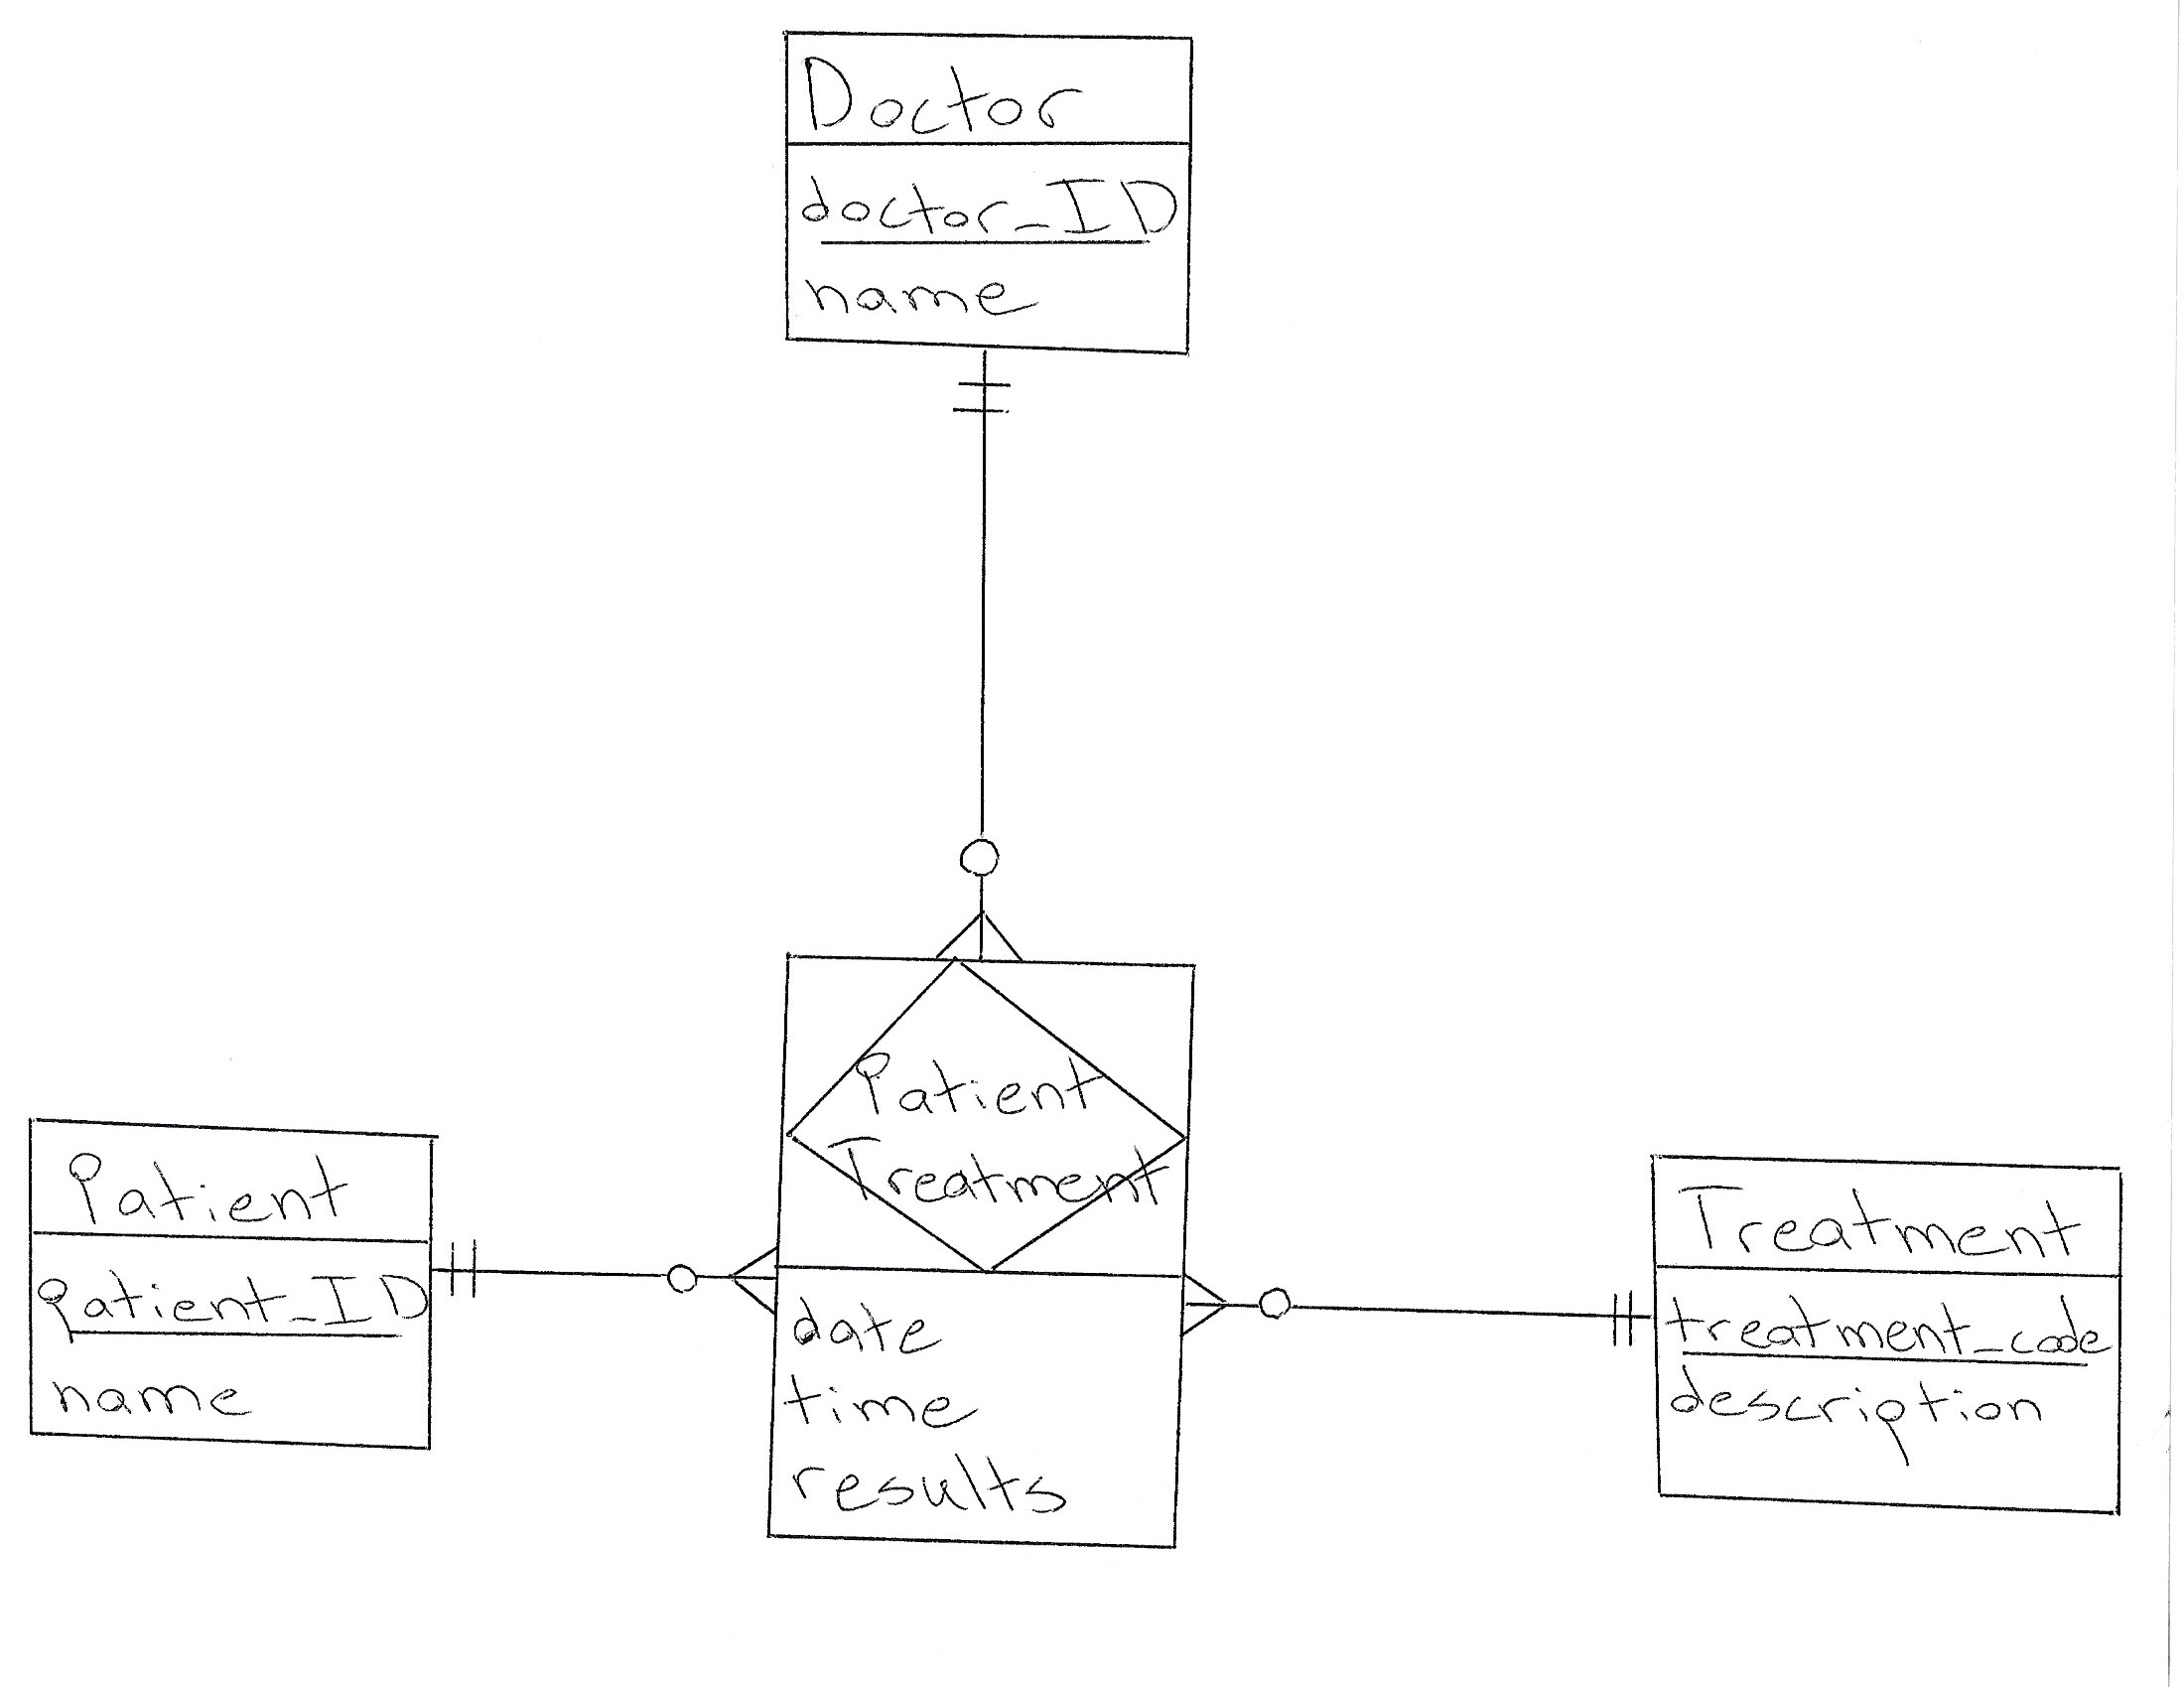 Database Design: How To Design A Database pertaining to Er Diagram Multiple Relationships